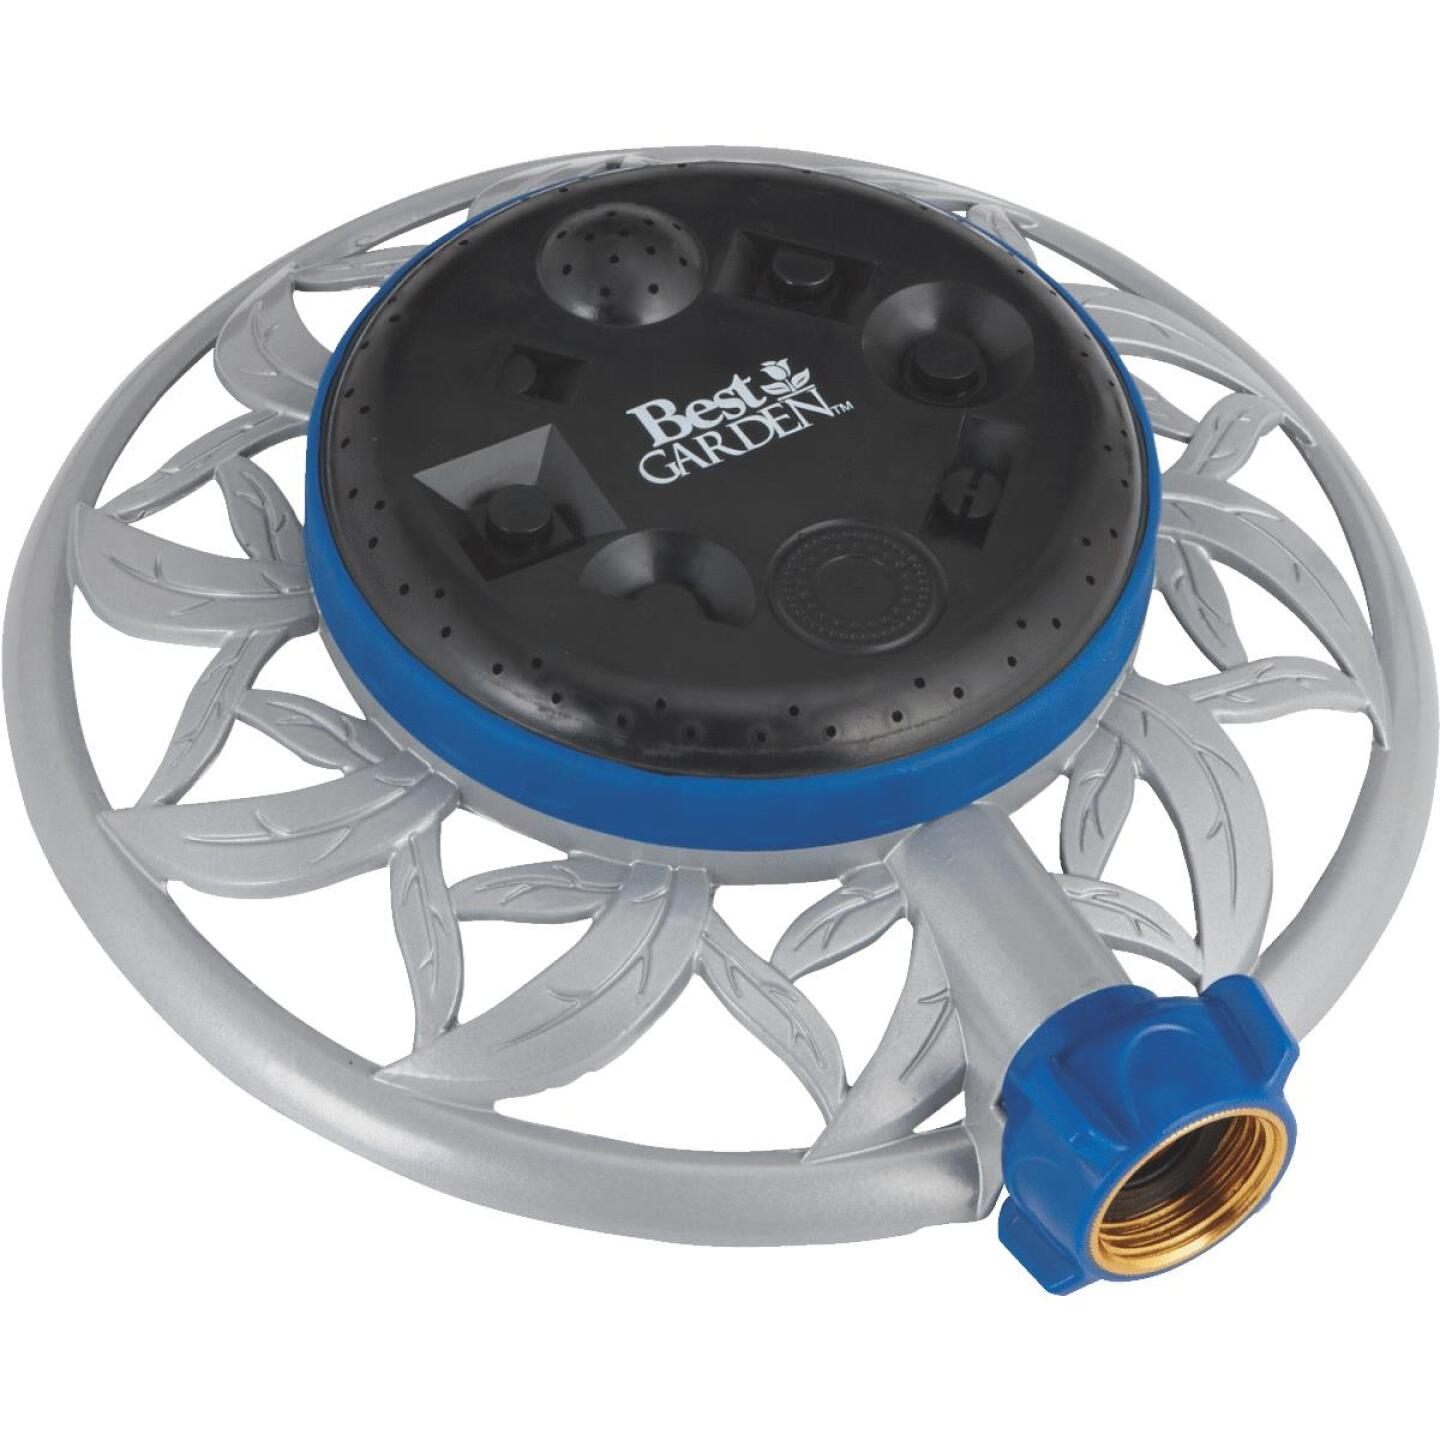 Best Garden Metal Varied Coverage Stationary Turret Sprinkler, Blue/Gray/Black Image 1